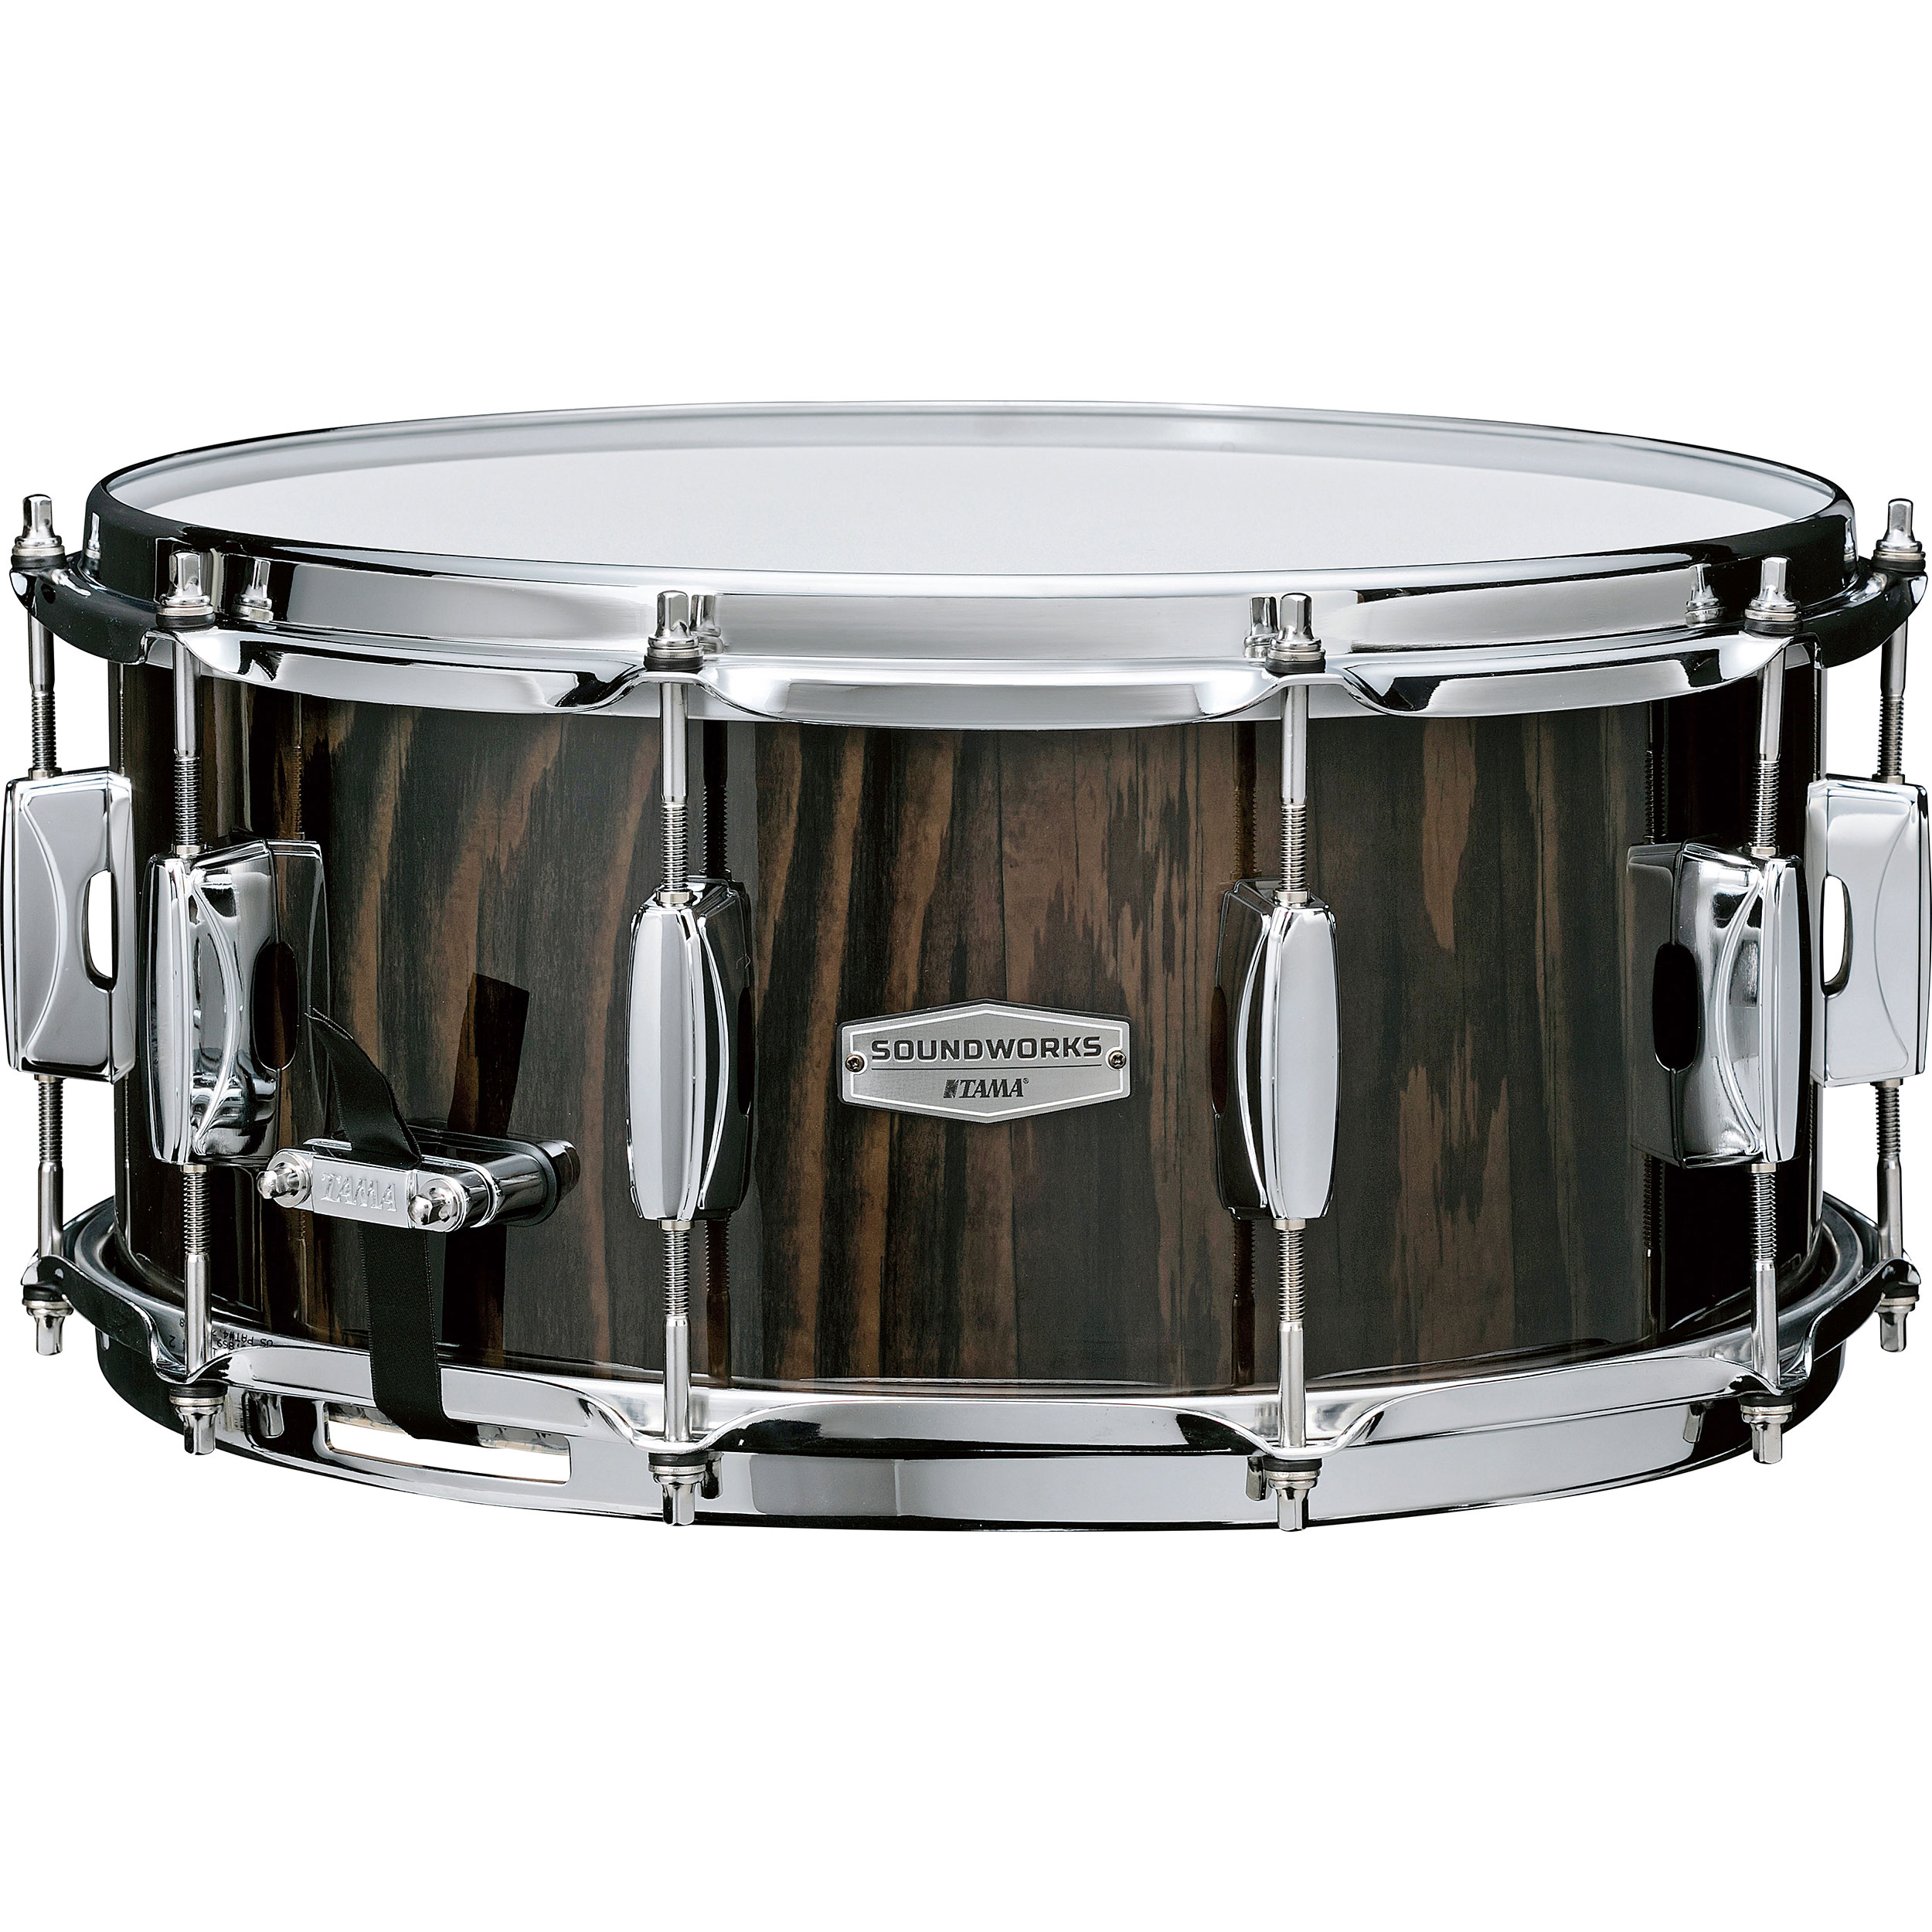 "Tama 6.5"" x 14"" Limited Edition Soundworks Maple Snare Drum in Black Lacebark Pine"